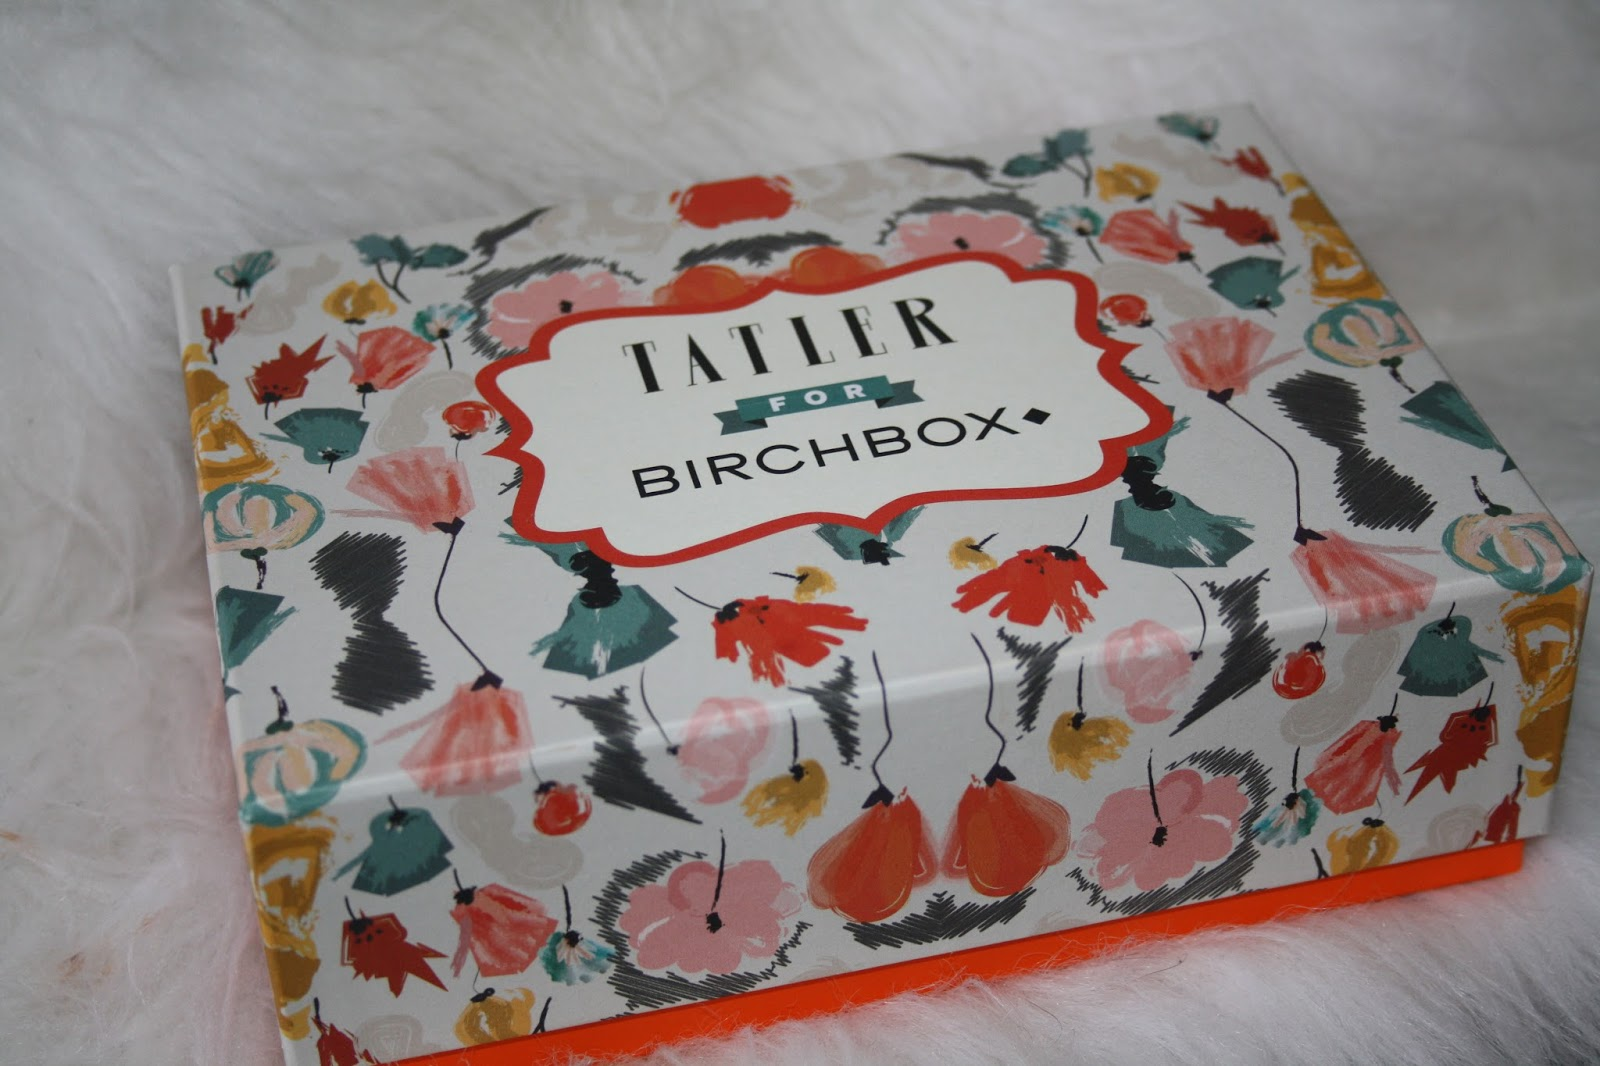 Tatler For Birchbox - Limited Edition